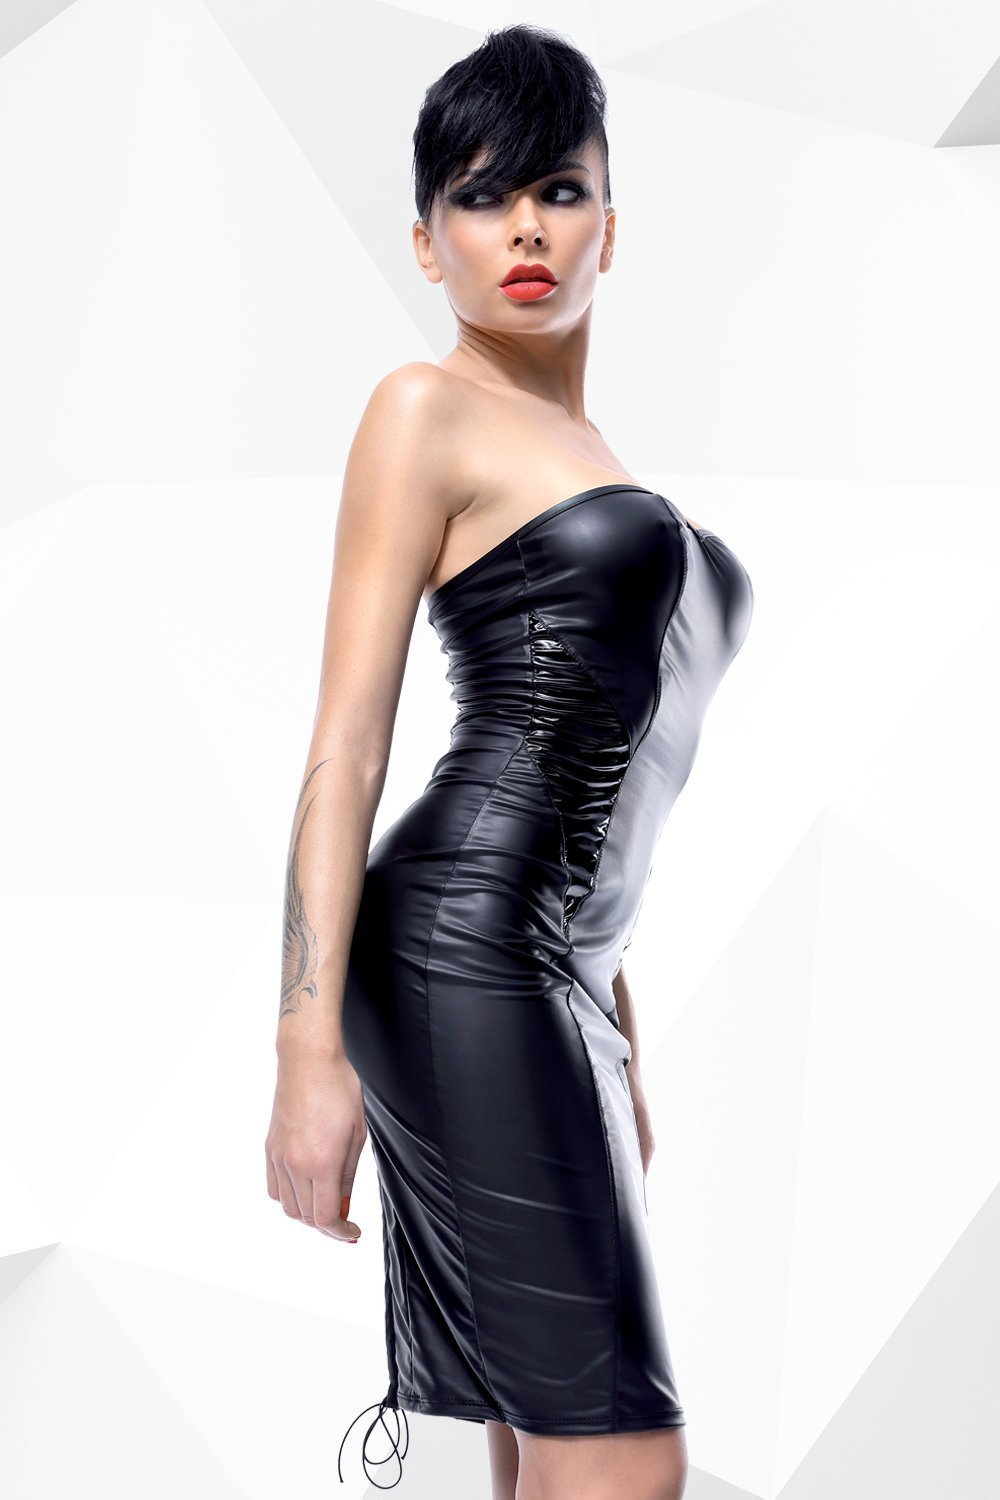 demoniq Dress UK 8 / Black Ellen by Demoniq Hard Candy Collection